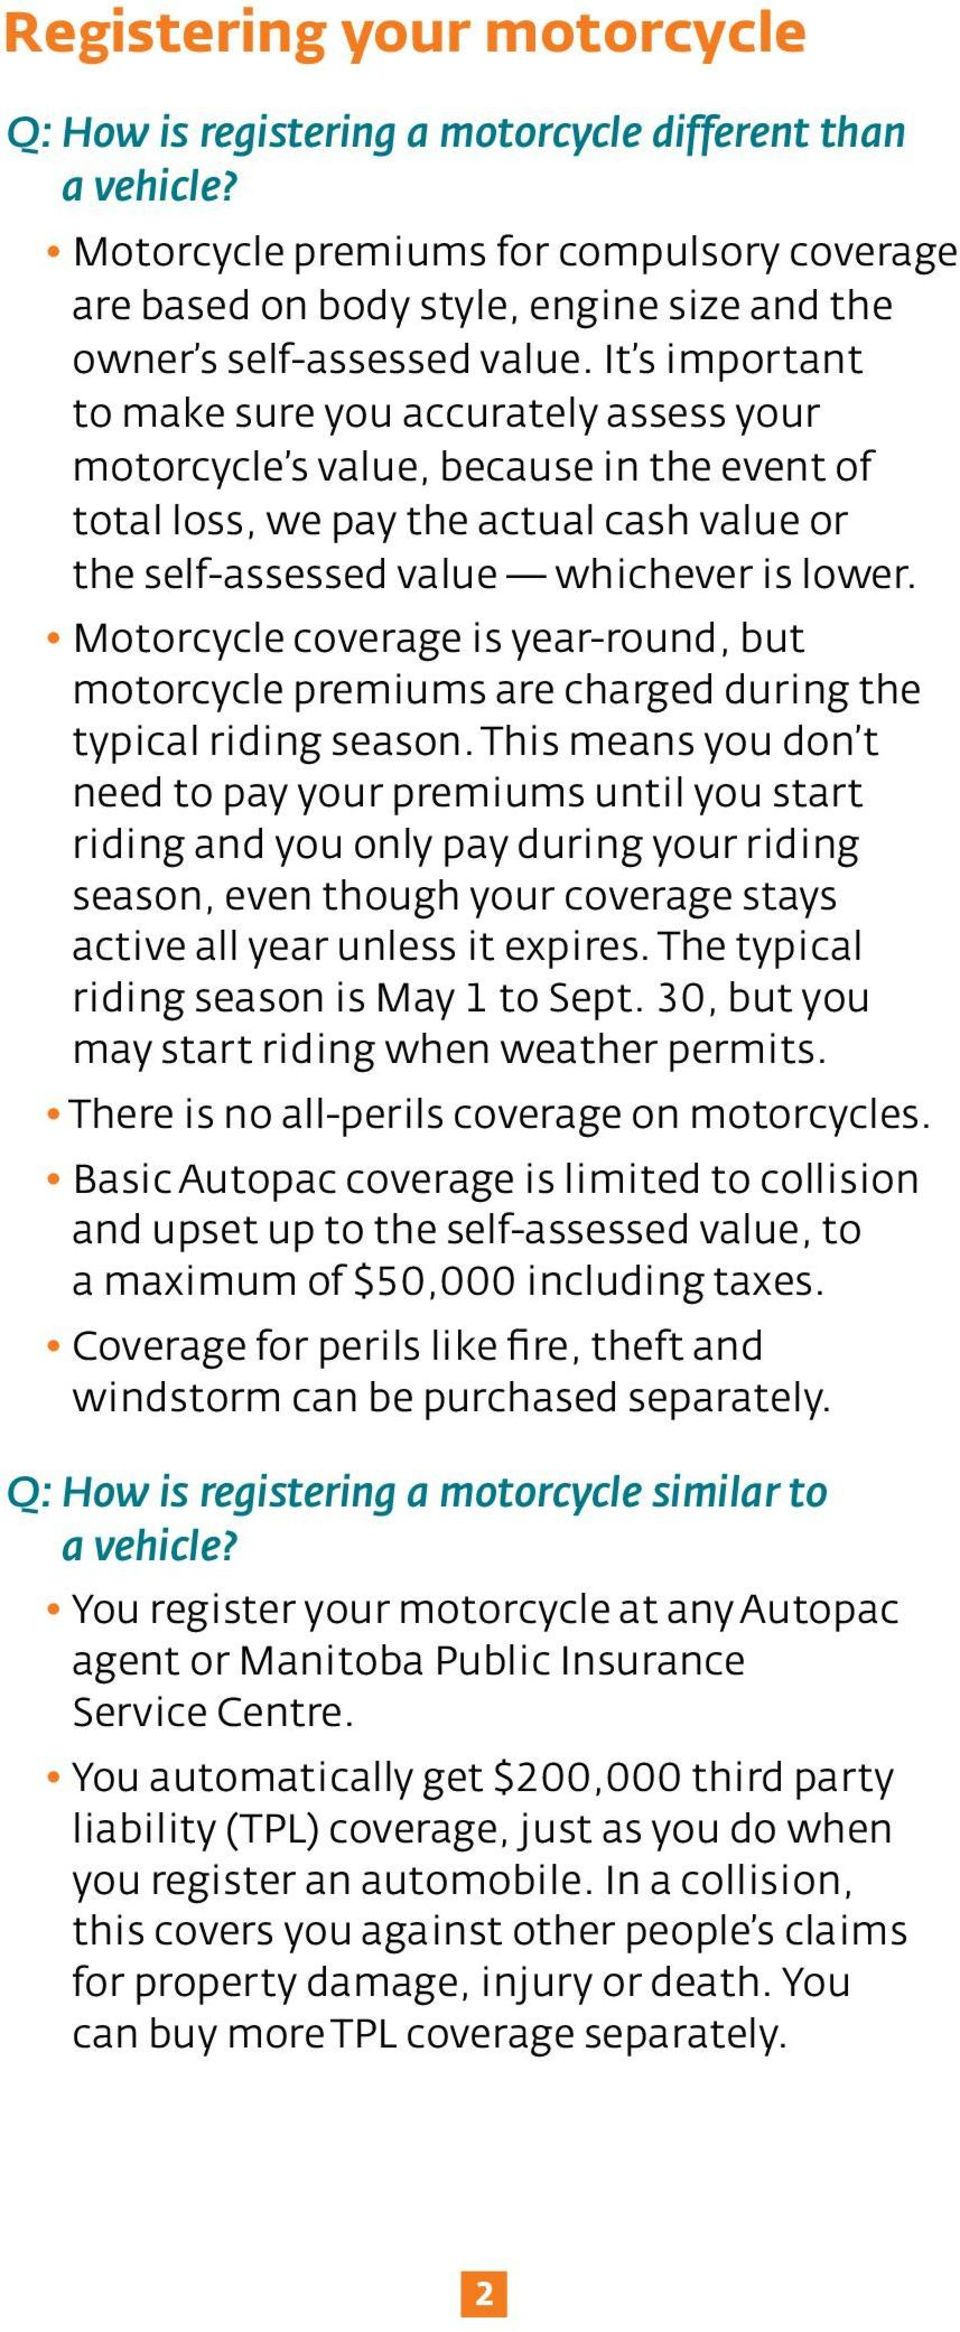 It s important to make sure you accurately assess your motorcycle s value, because in the event of total loss, we pay the actual cash value or the self-assessed value whichever is lower.